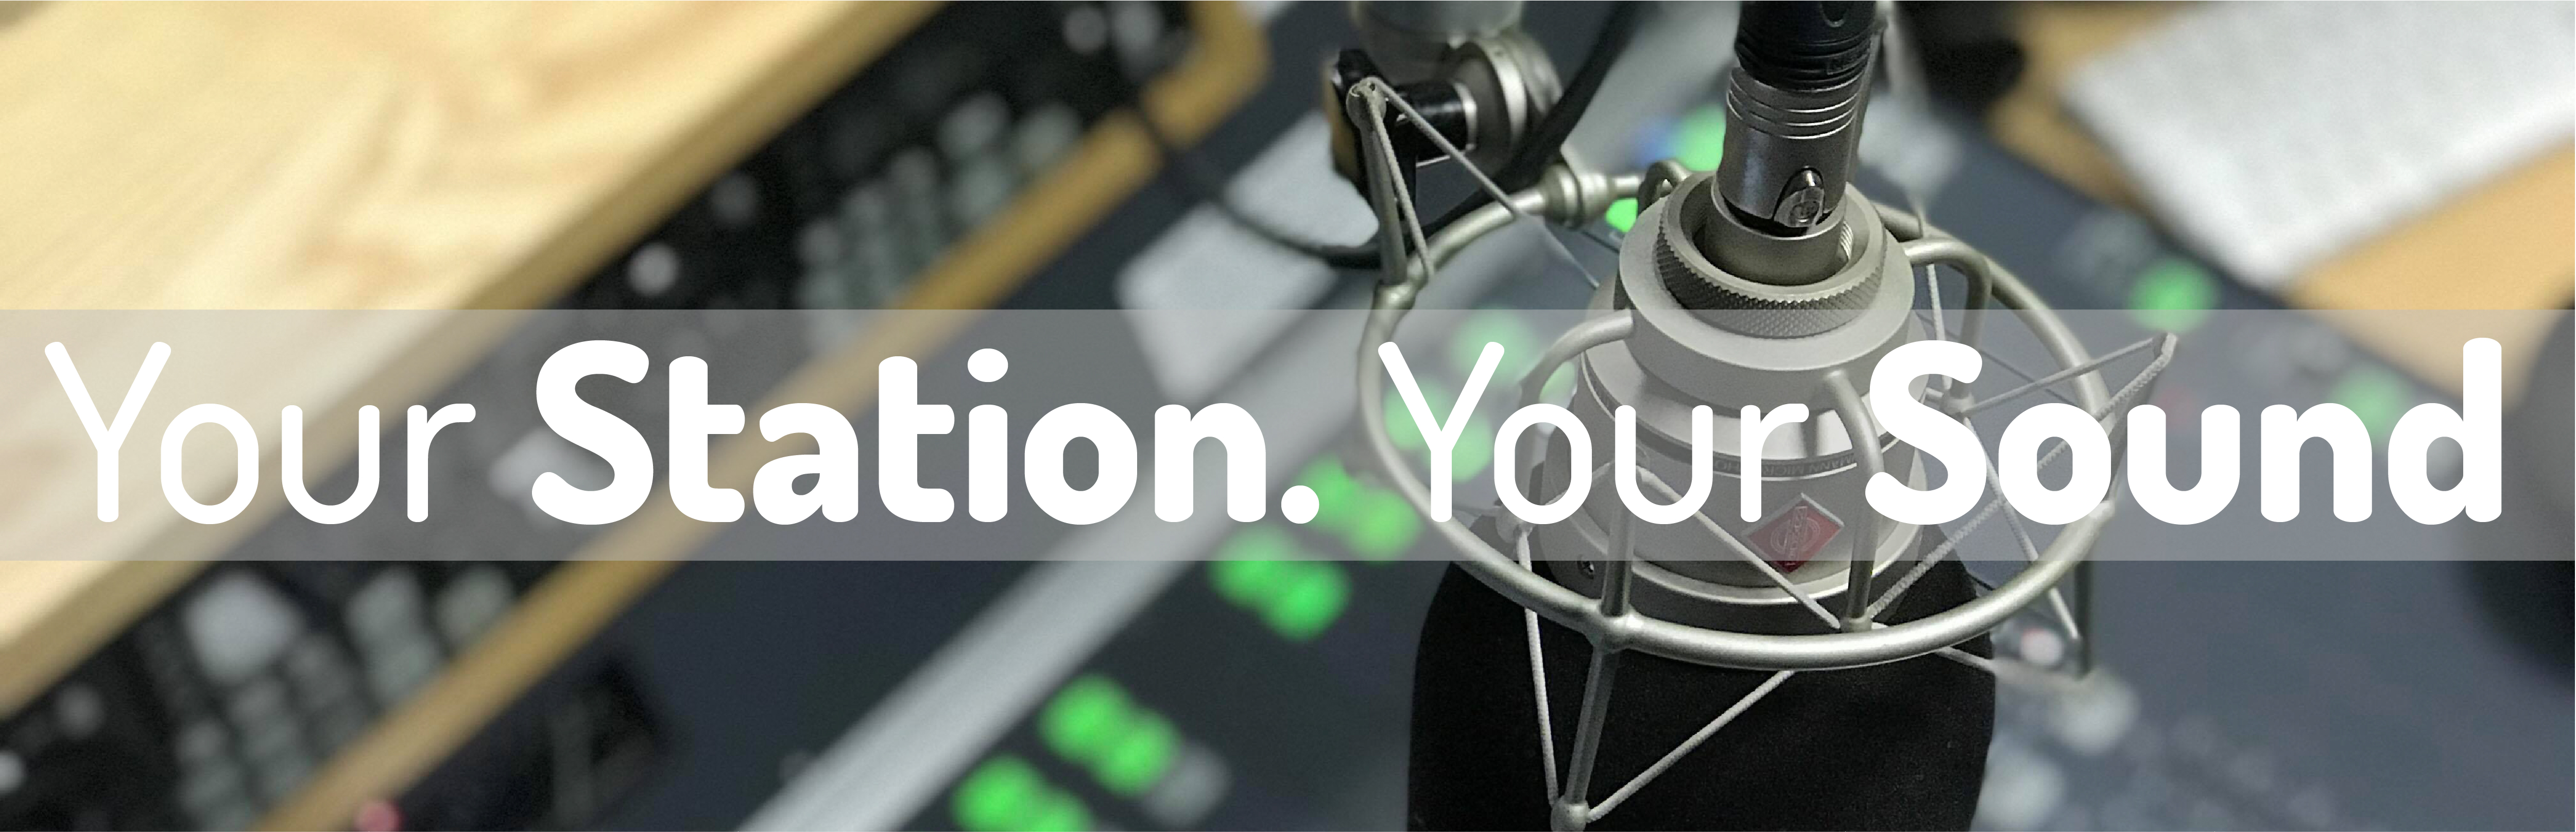 your station your sound 2